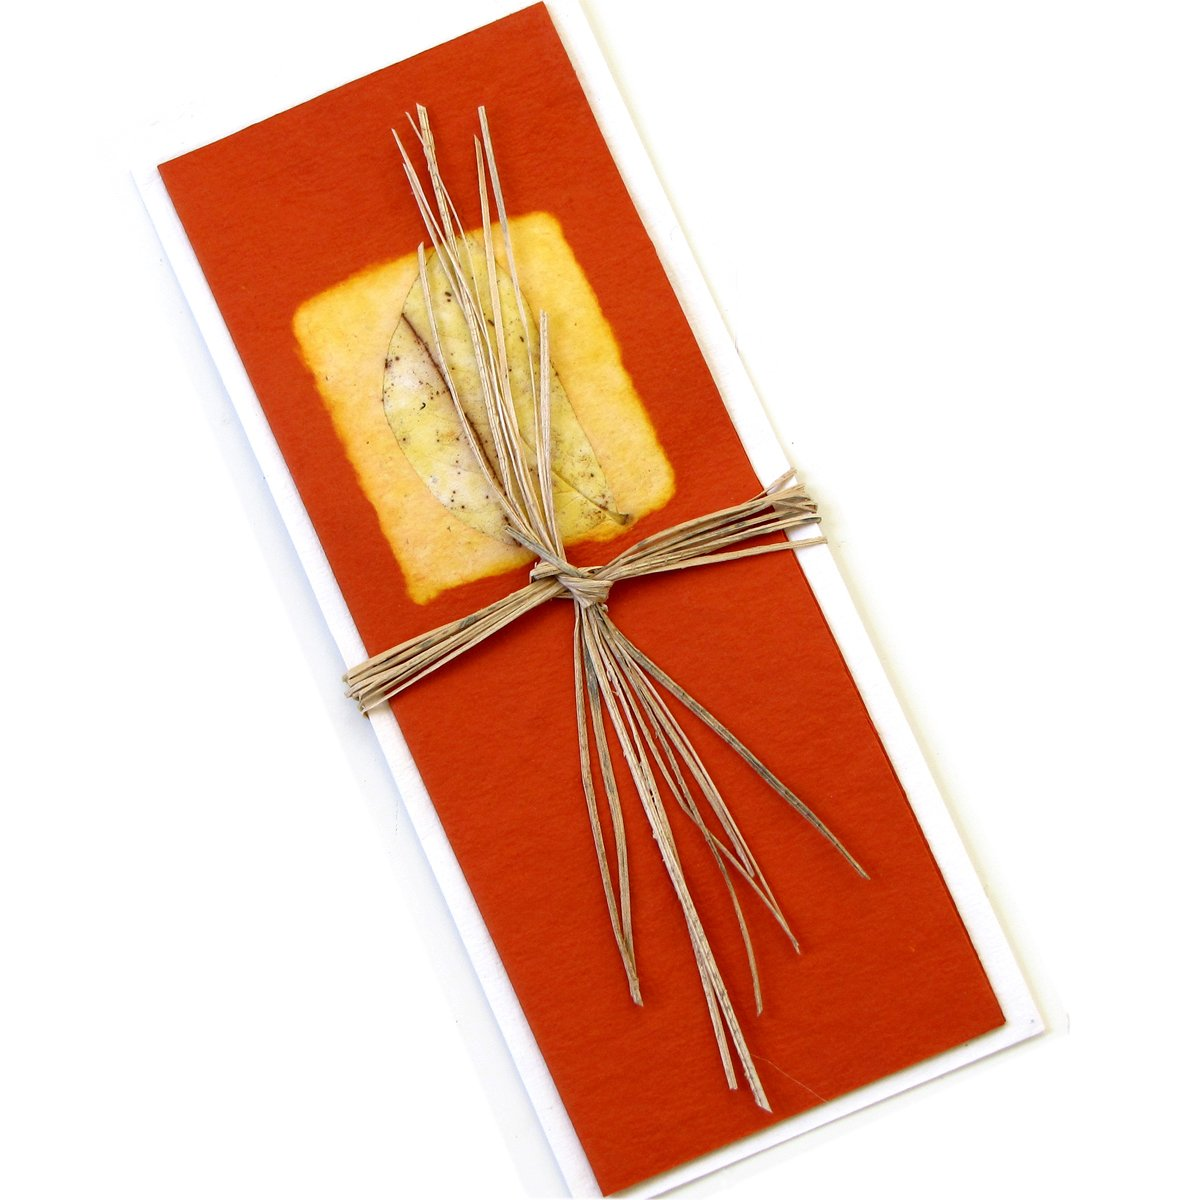 Handmade cards orange long 3x8 stationery greetings thank you mom card eco friendly cotton paper